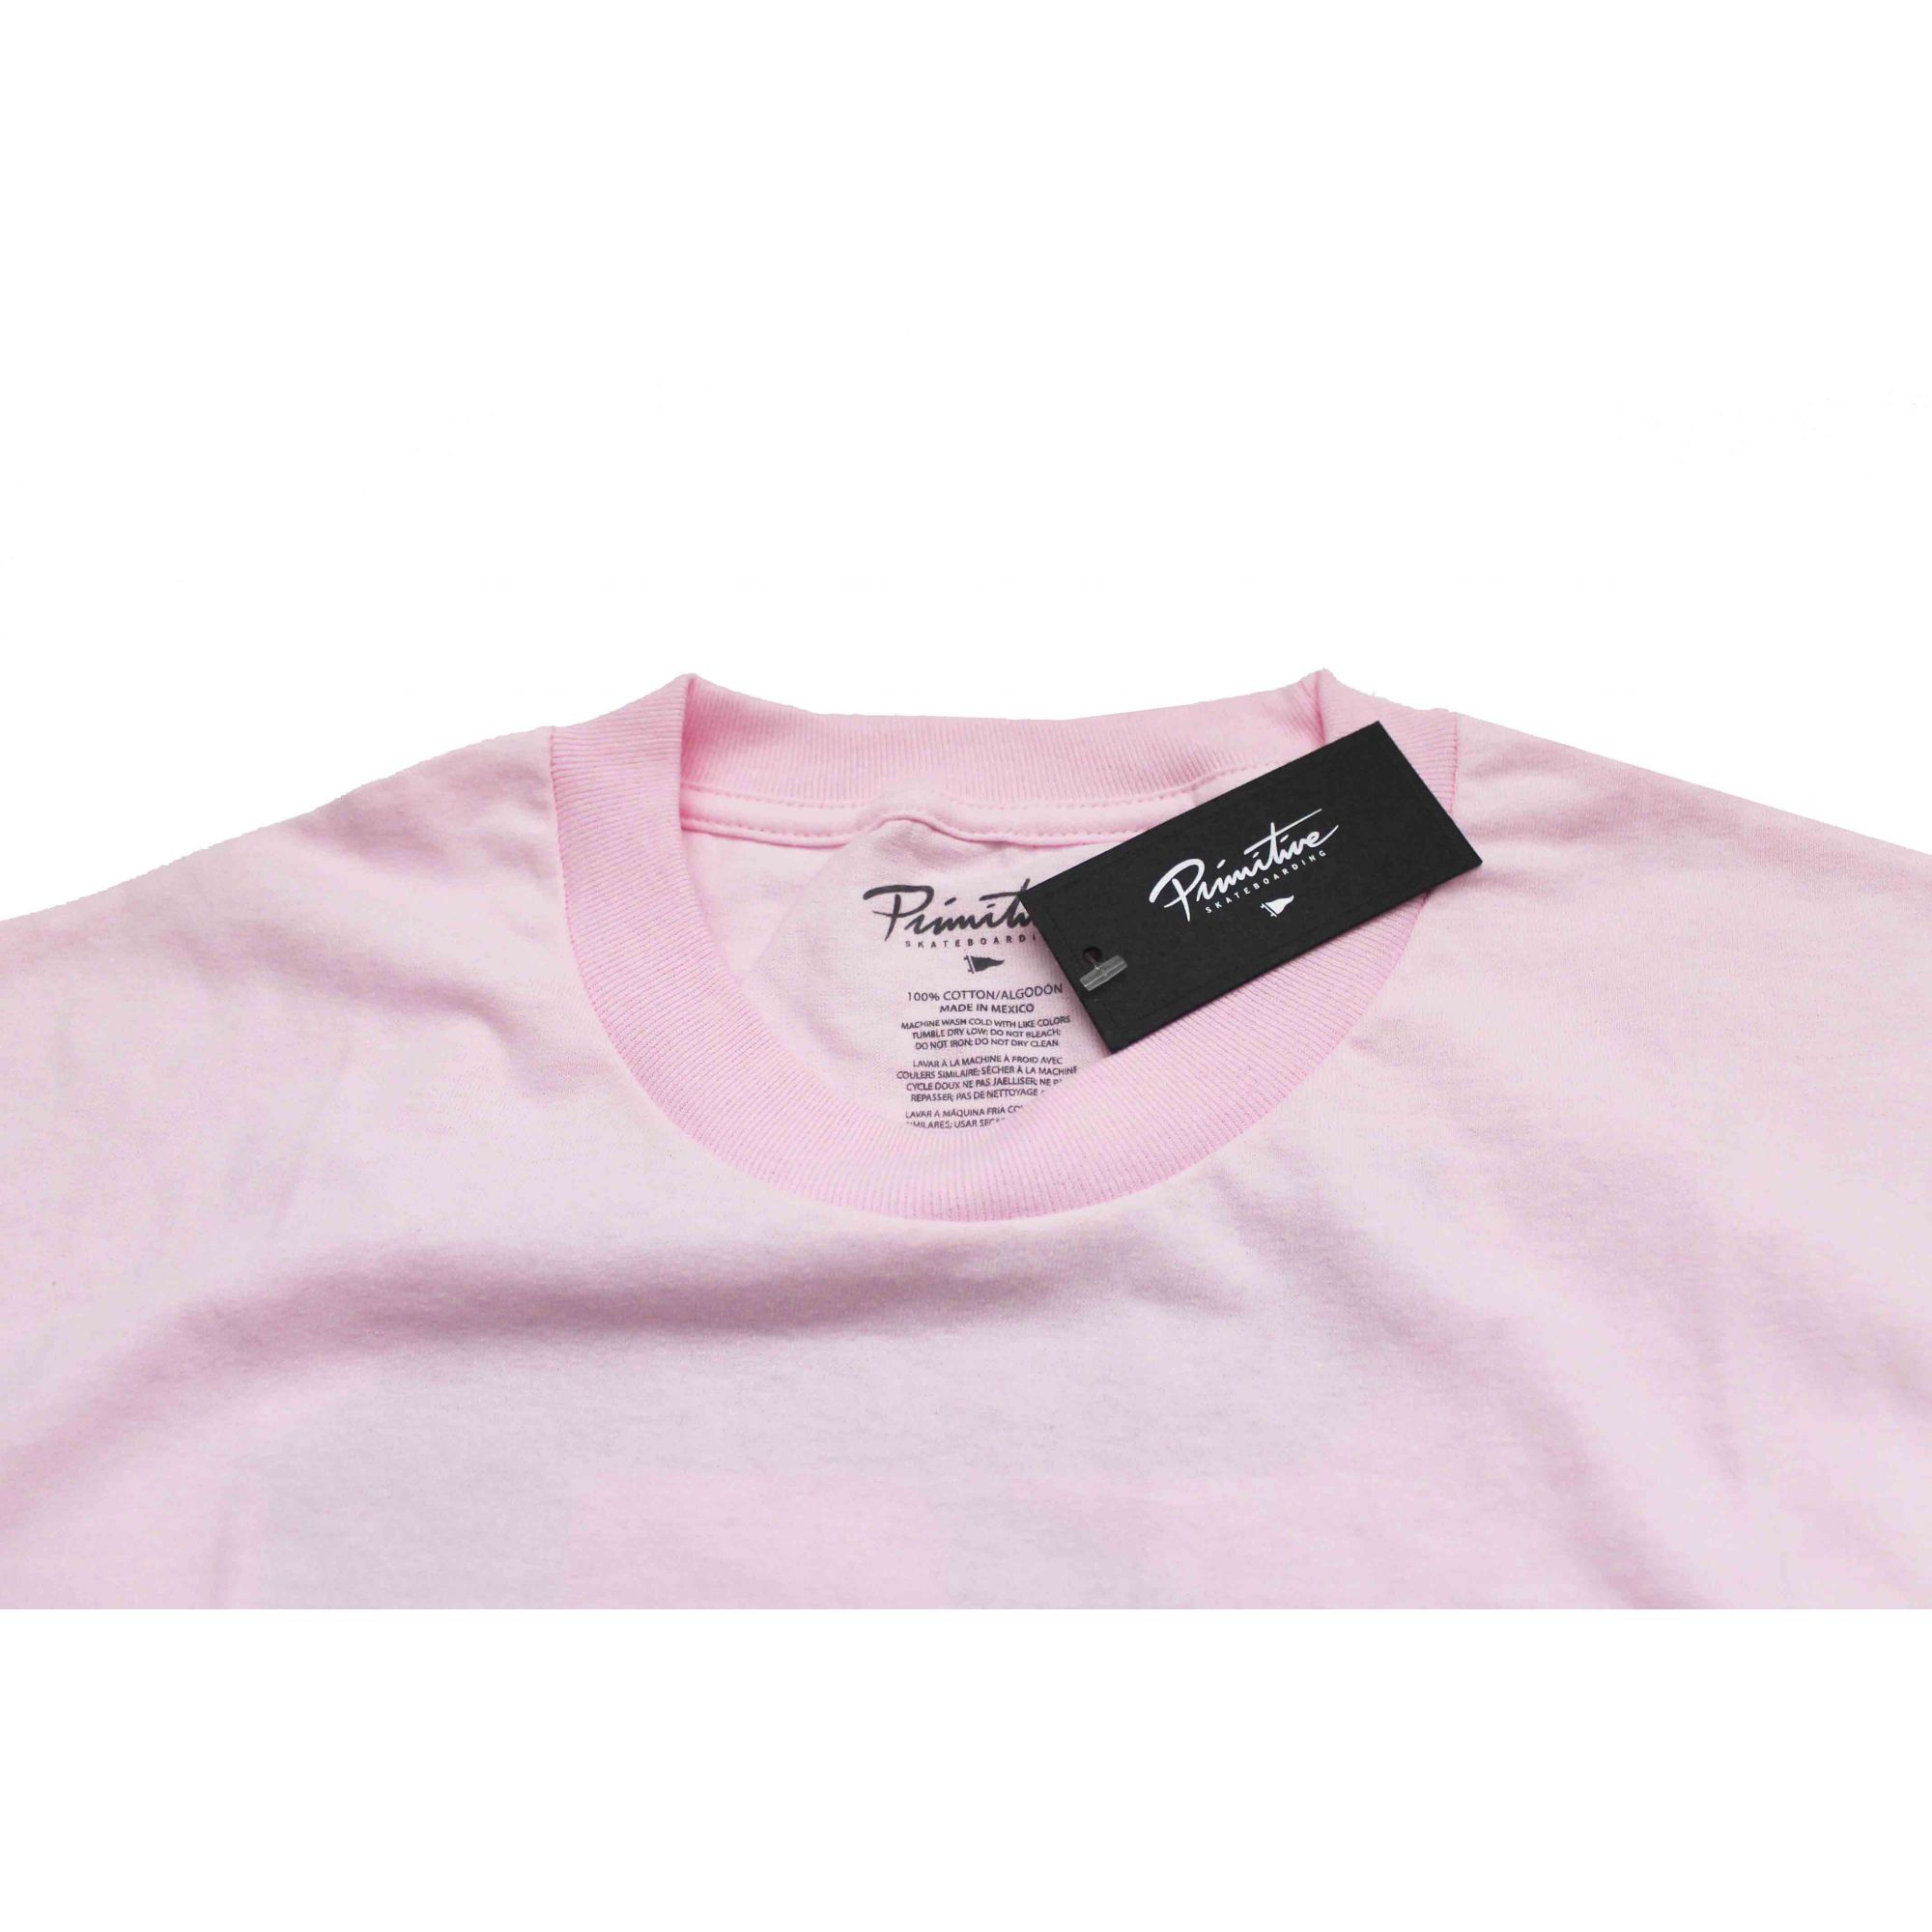 d20101a7 ... Camiseta Primitive Dirty P Lily Tee Pink - Steezy ...